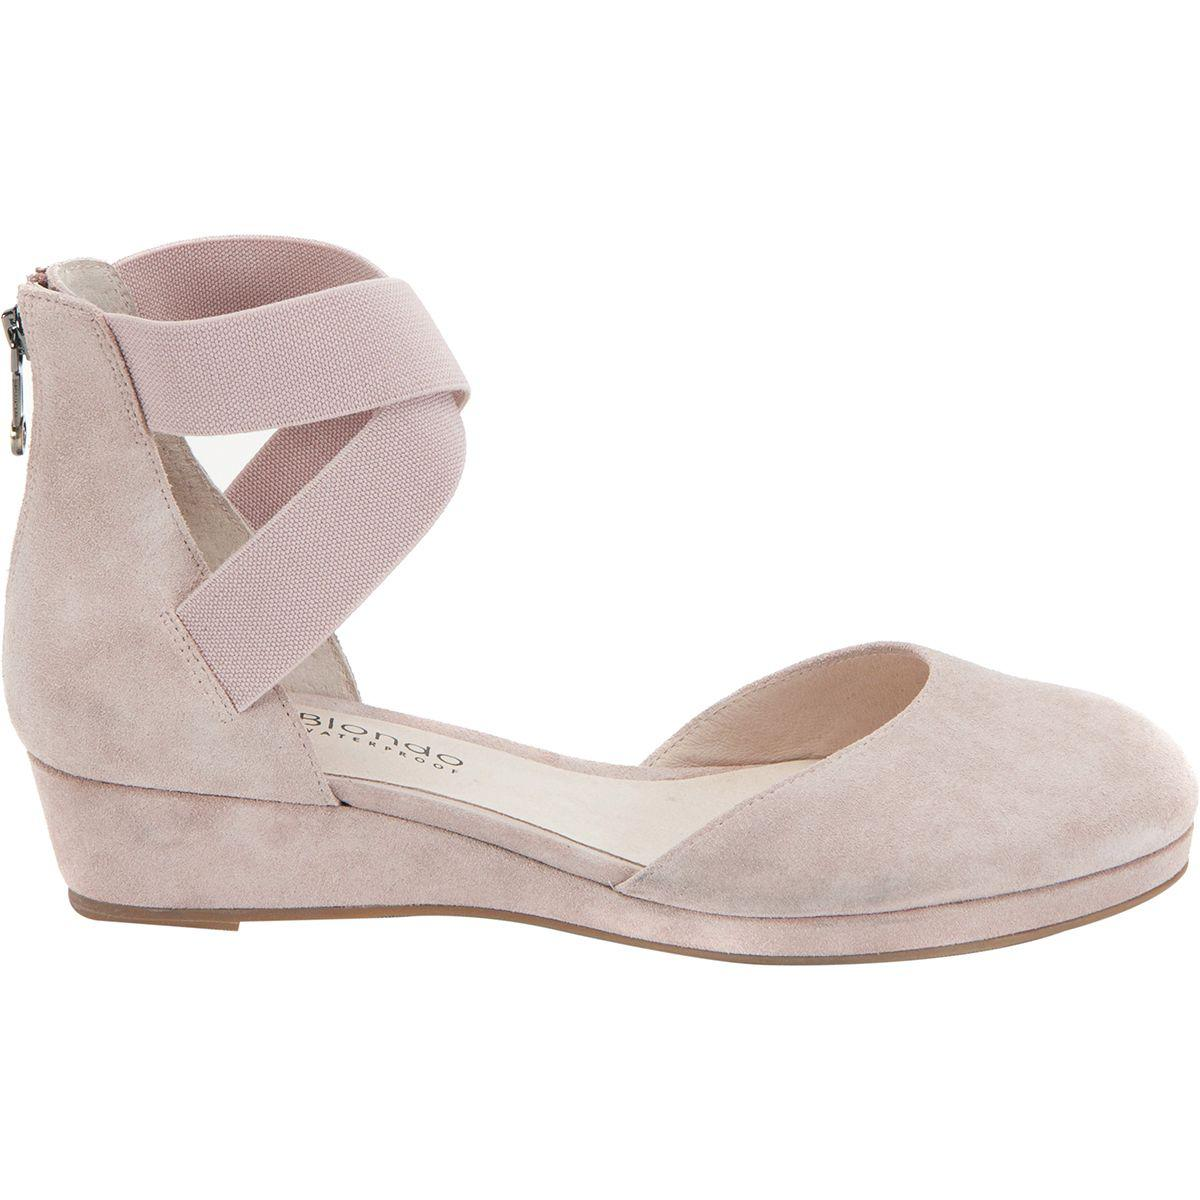 359955df499 Lyst - Blondo Cathy Shoe in Pink